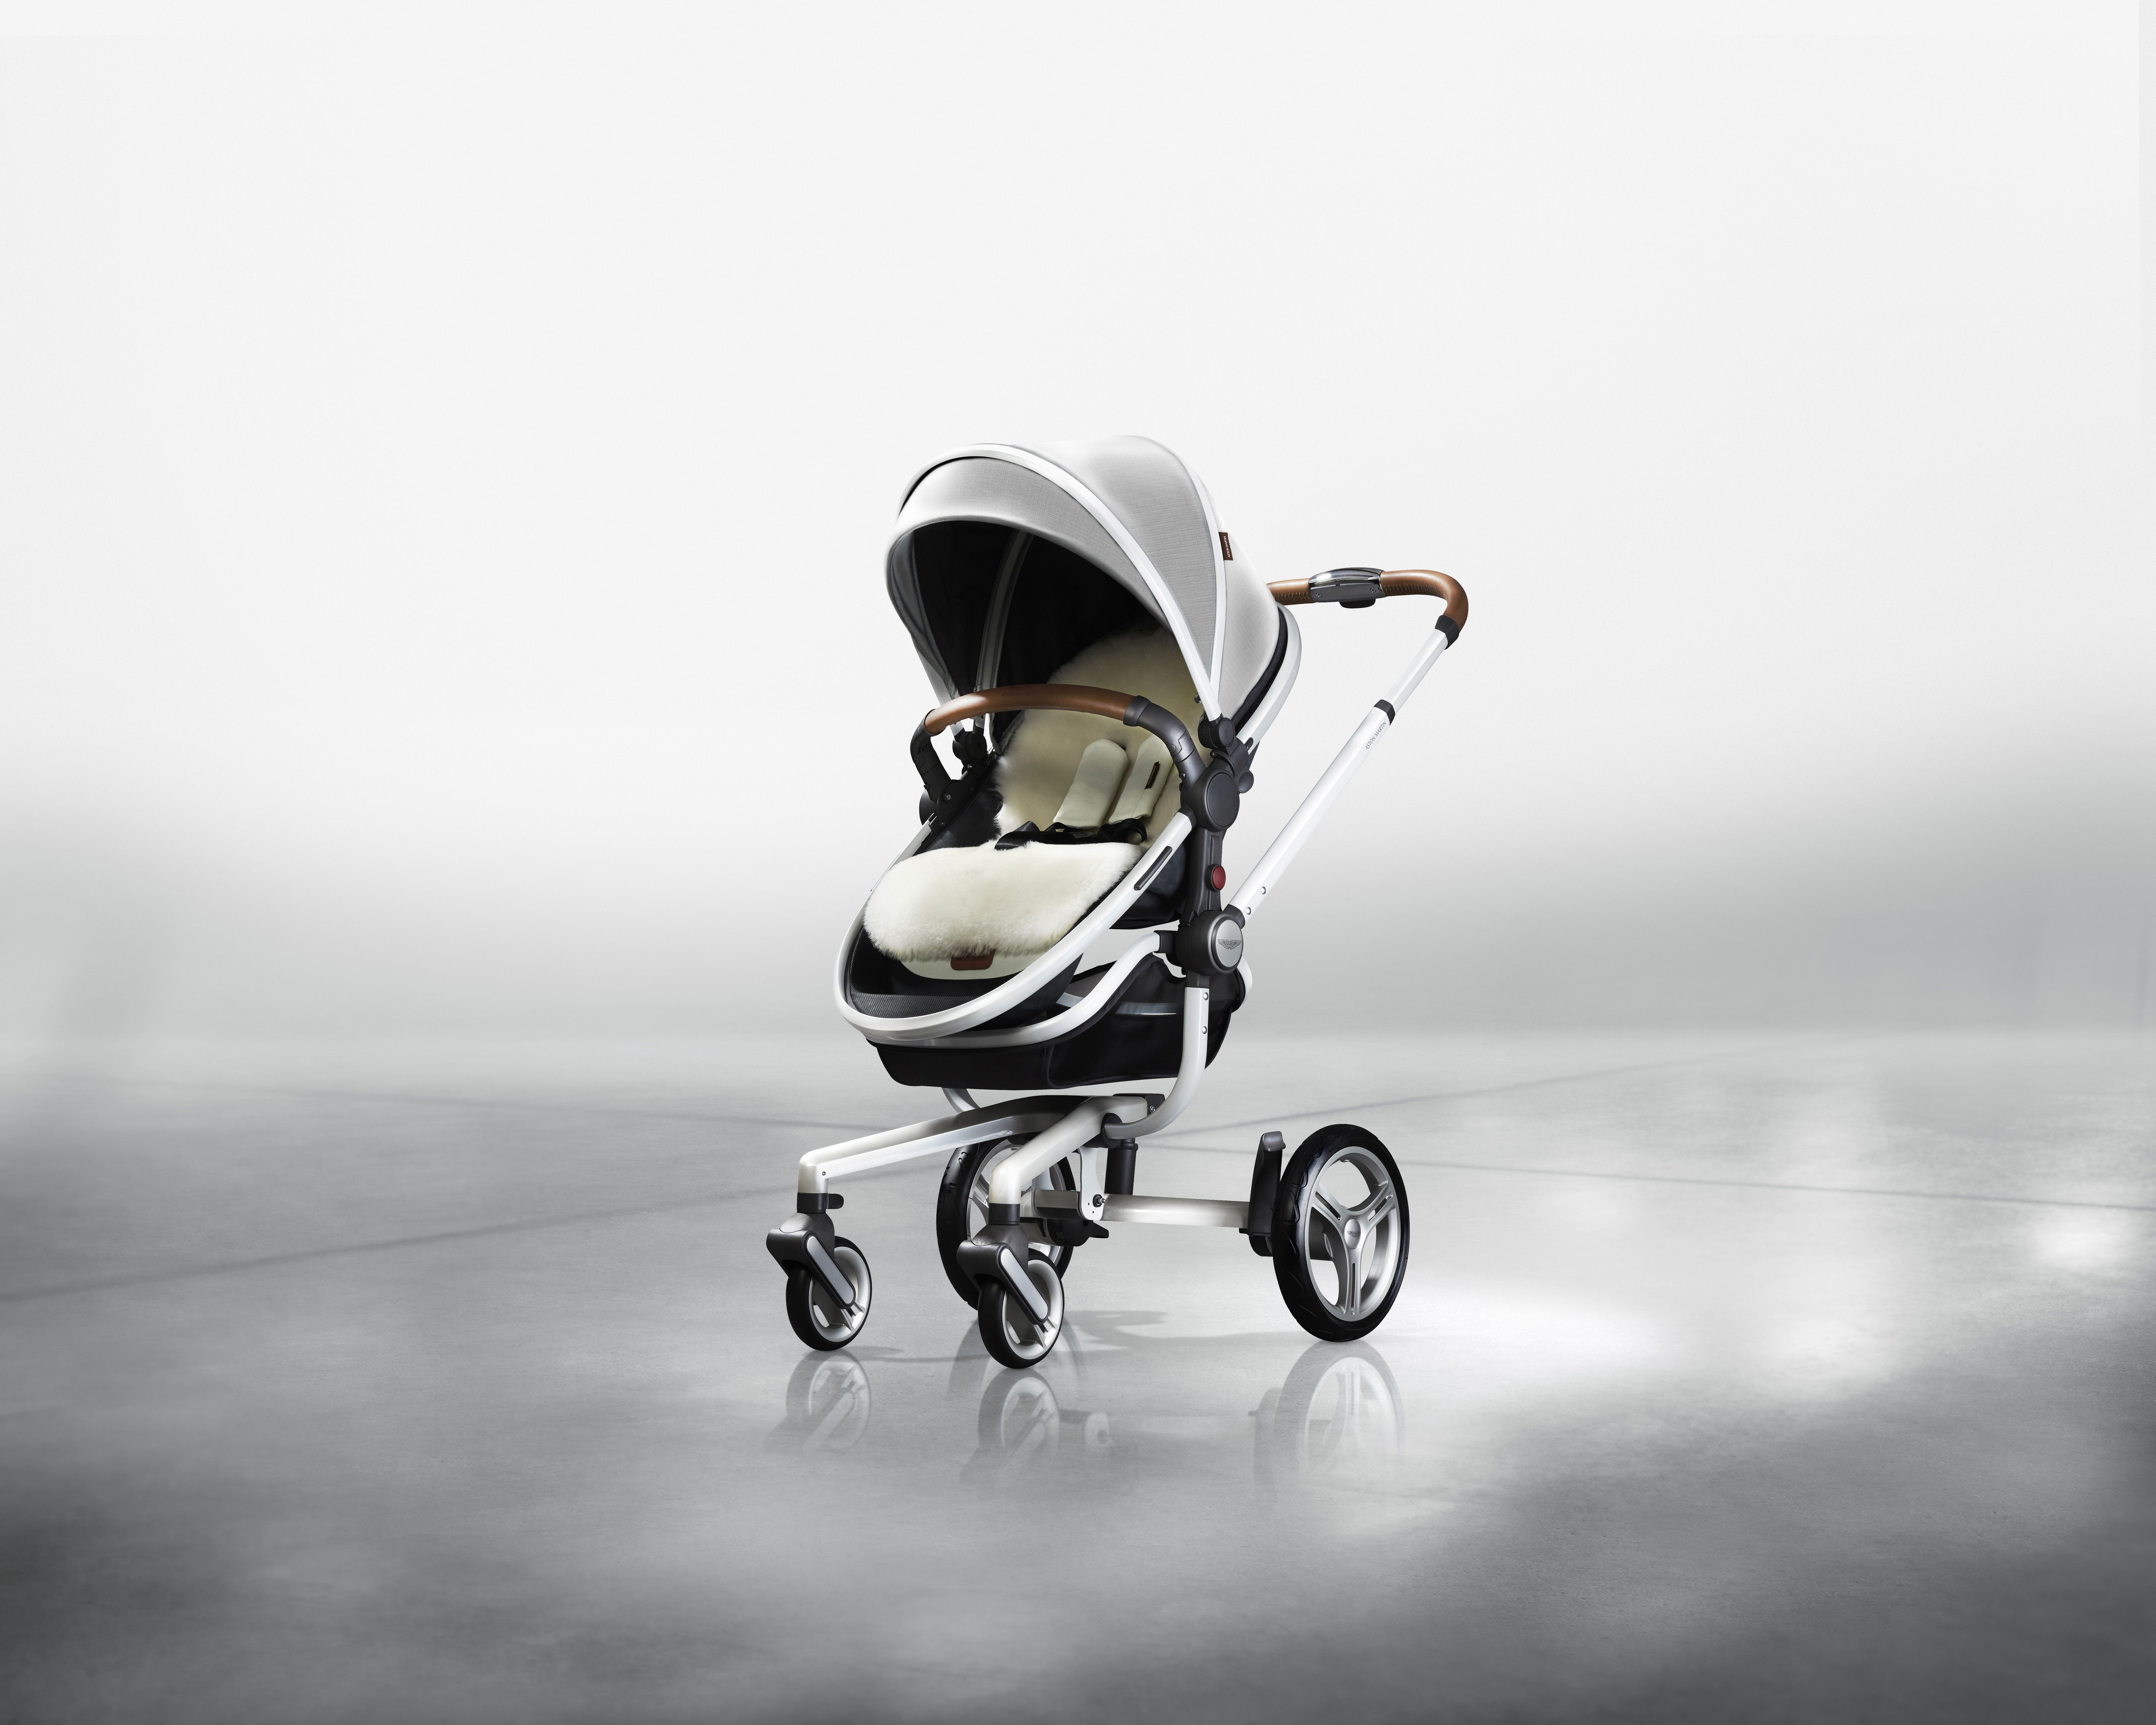 Silver Cross Luxury Pushchair Seat Liner Designed For Performance The New Silver Cross Surf